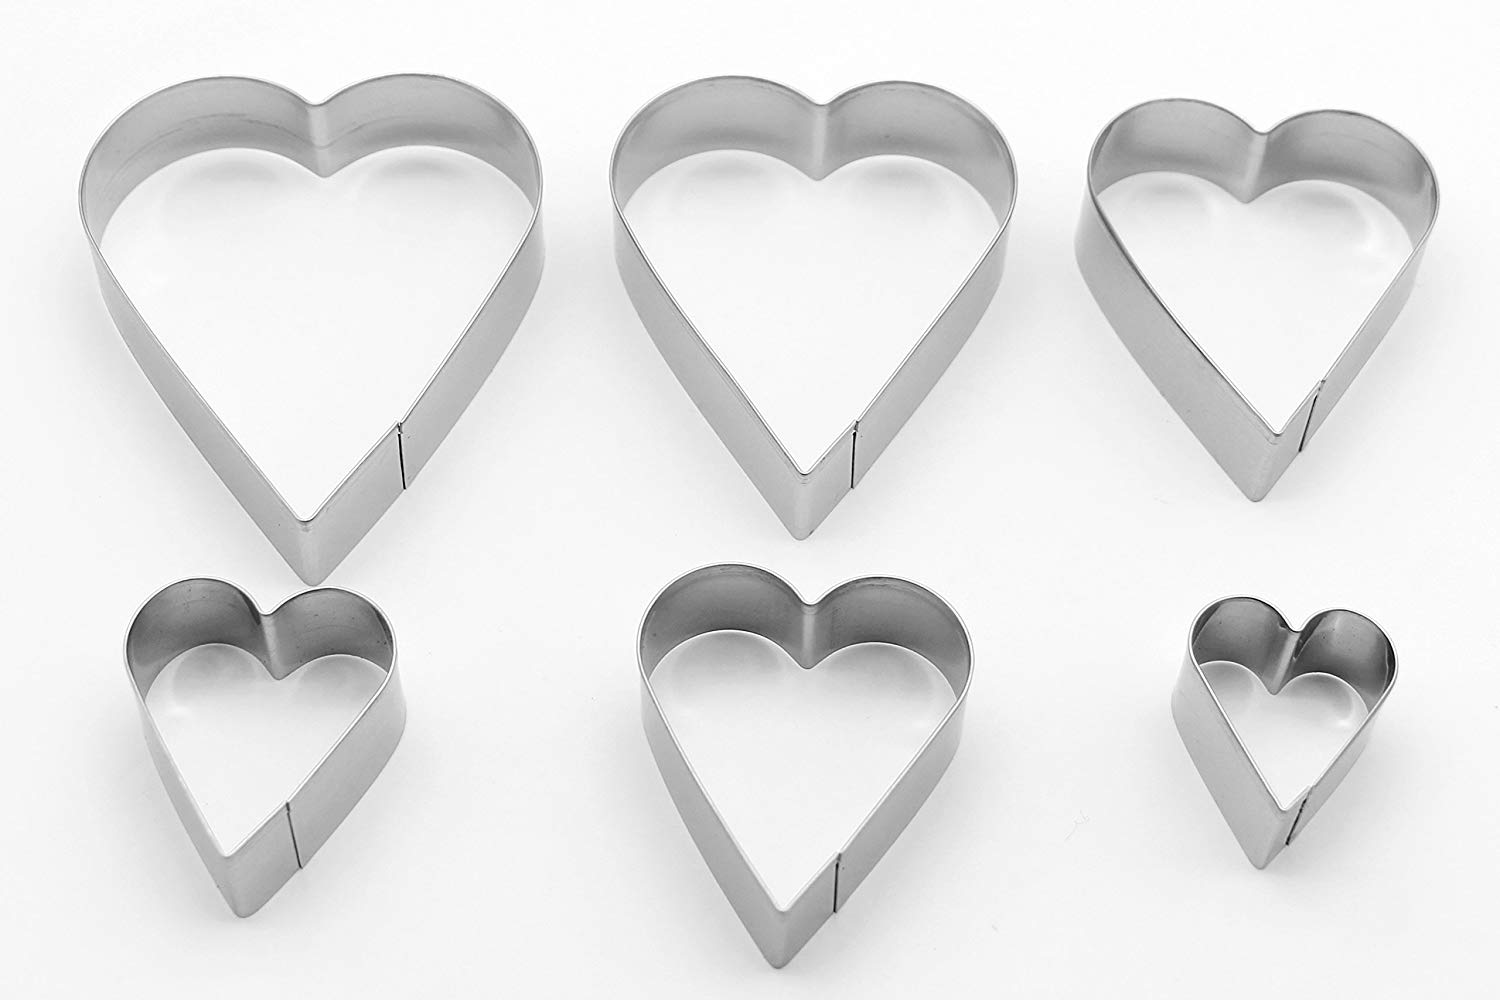 6pcs Stainless Steel Heart Cookie Cutter set